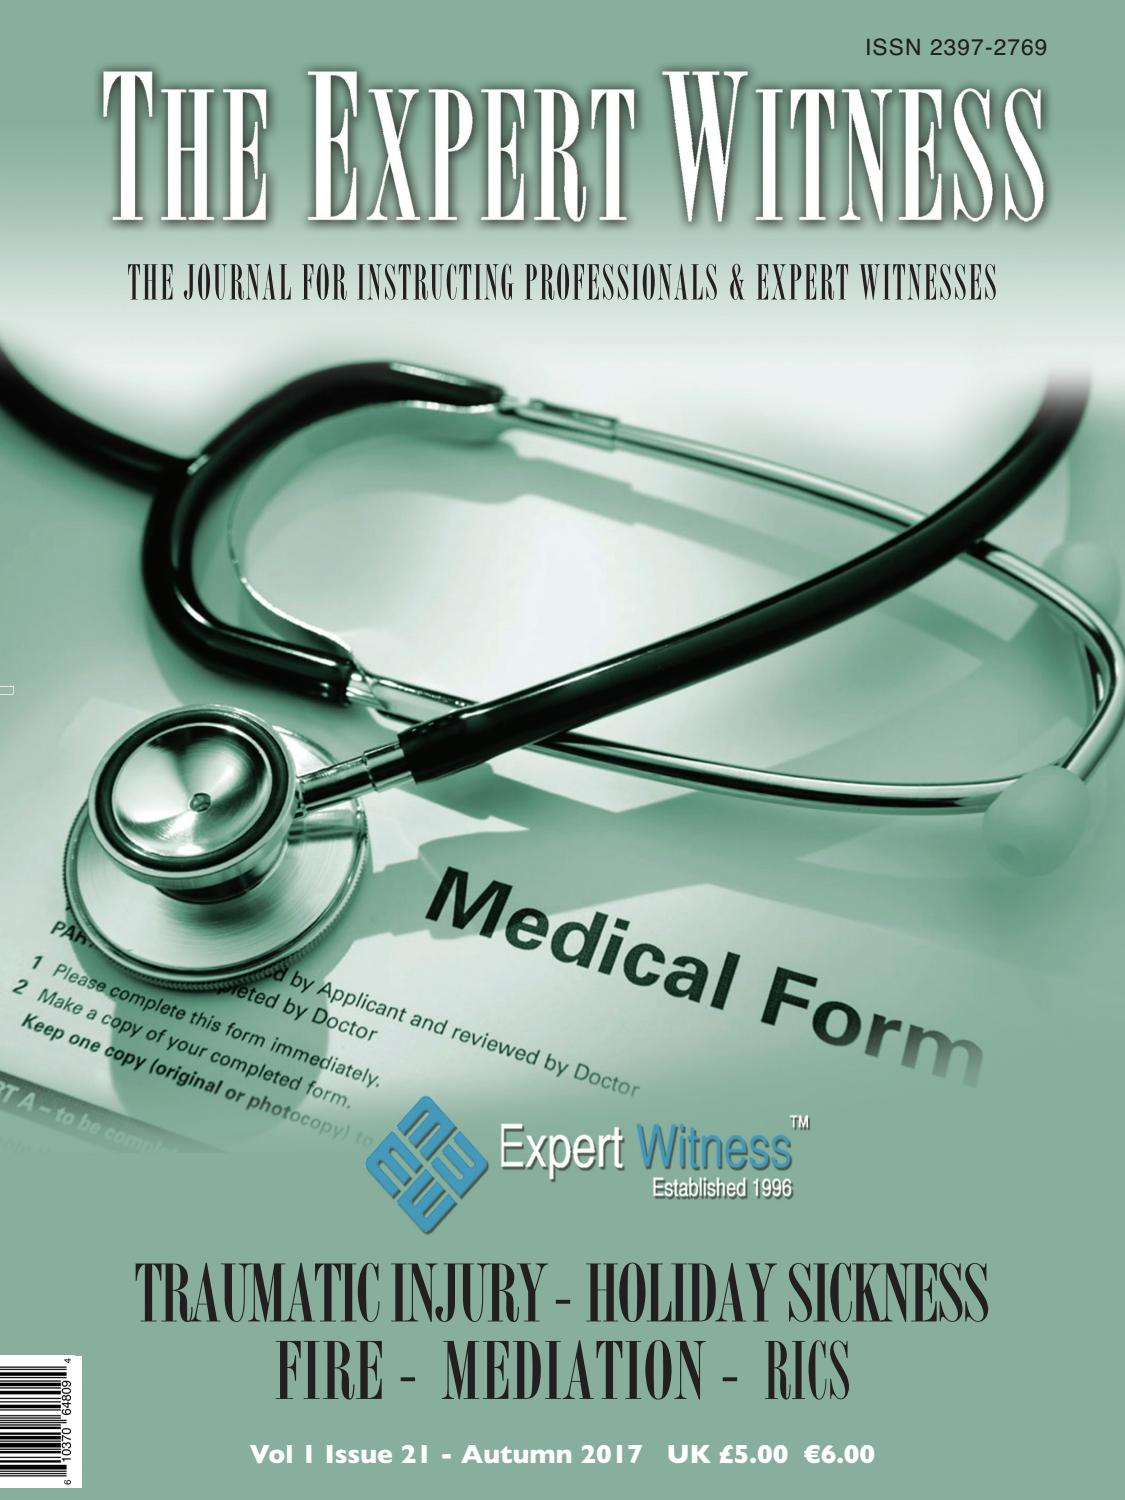 The Expert Witness By ExpertWitness Issuu - Medical expert witness invoice template